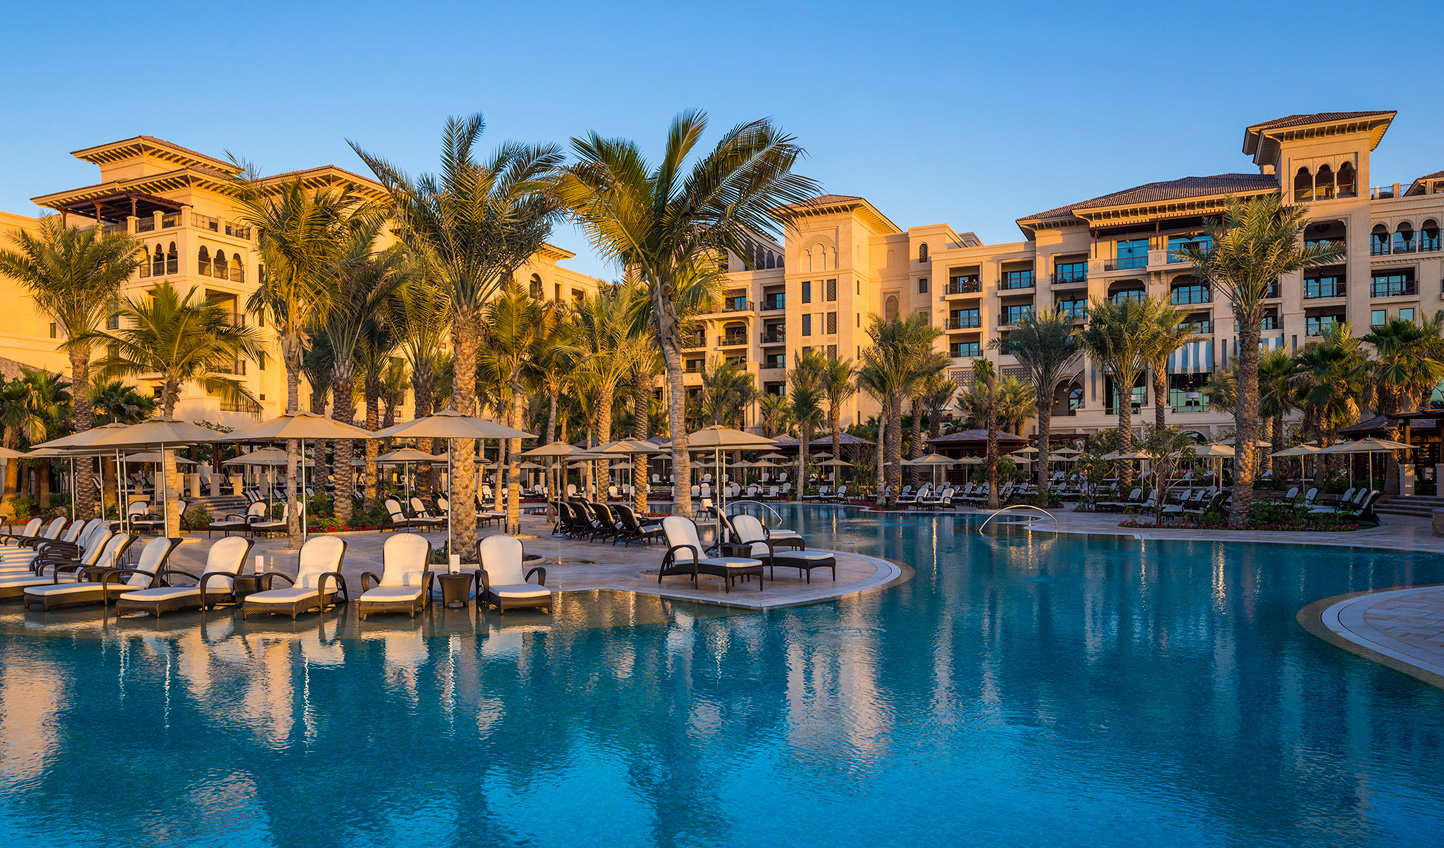 Spend your days relaxing by the pool until the sun eventually fades into the Gulf